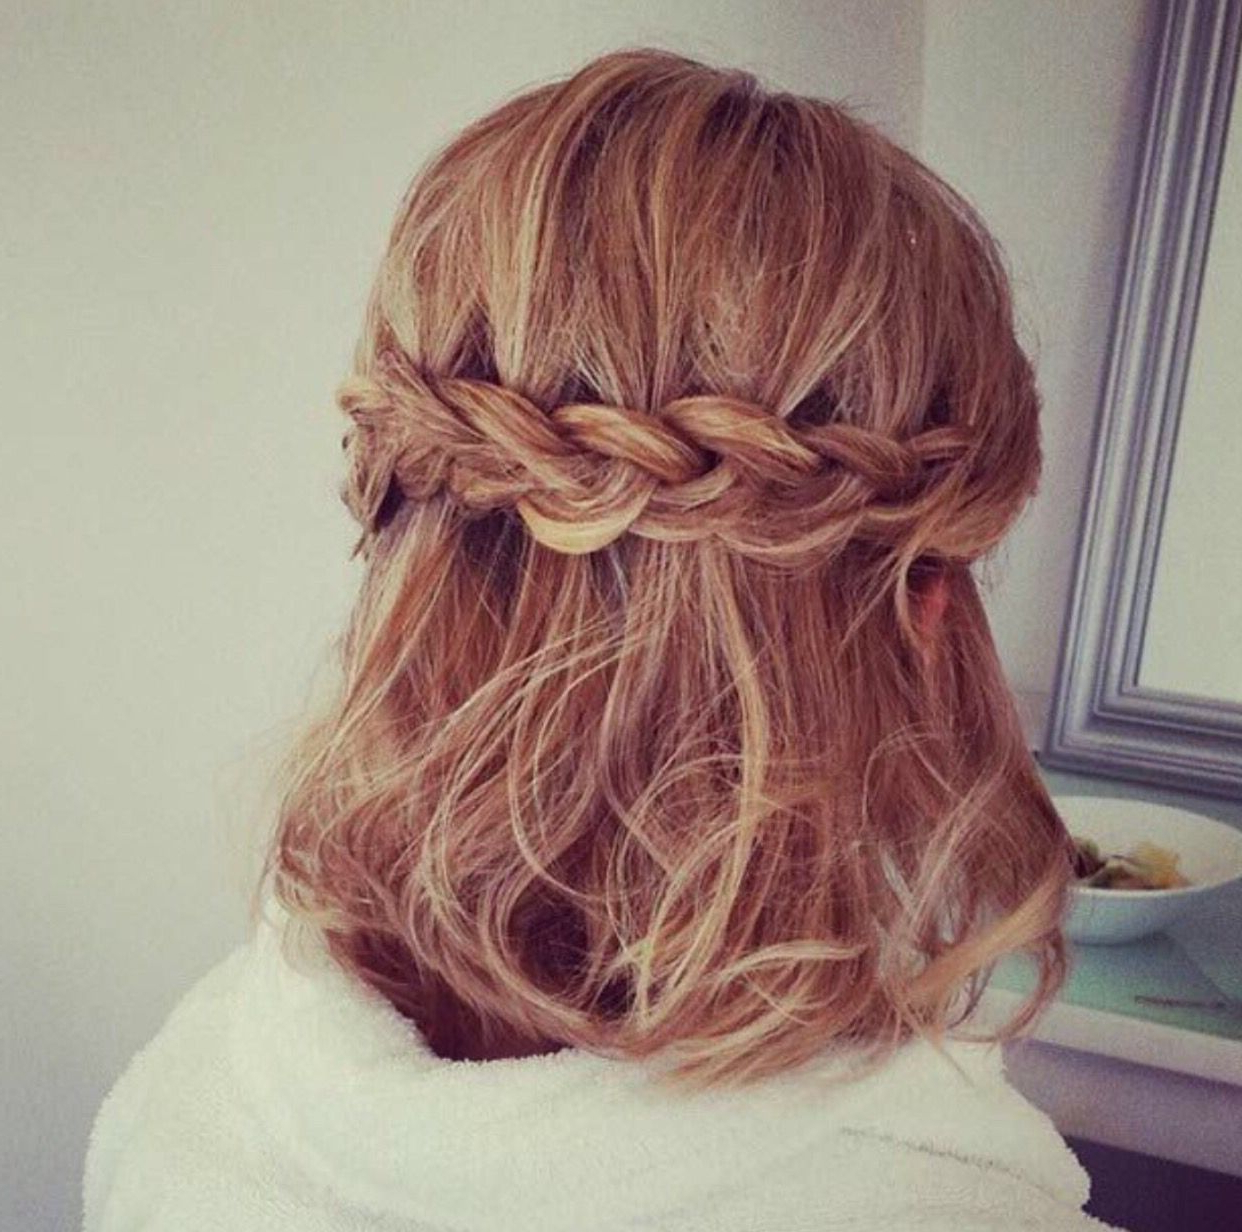 Piny On Hair (View 10 of 25)